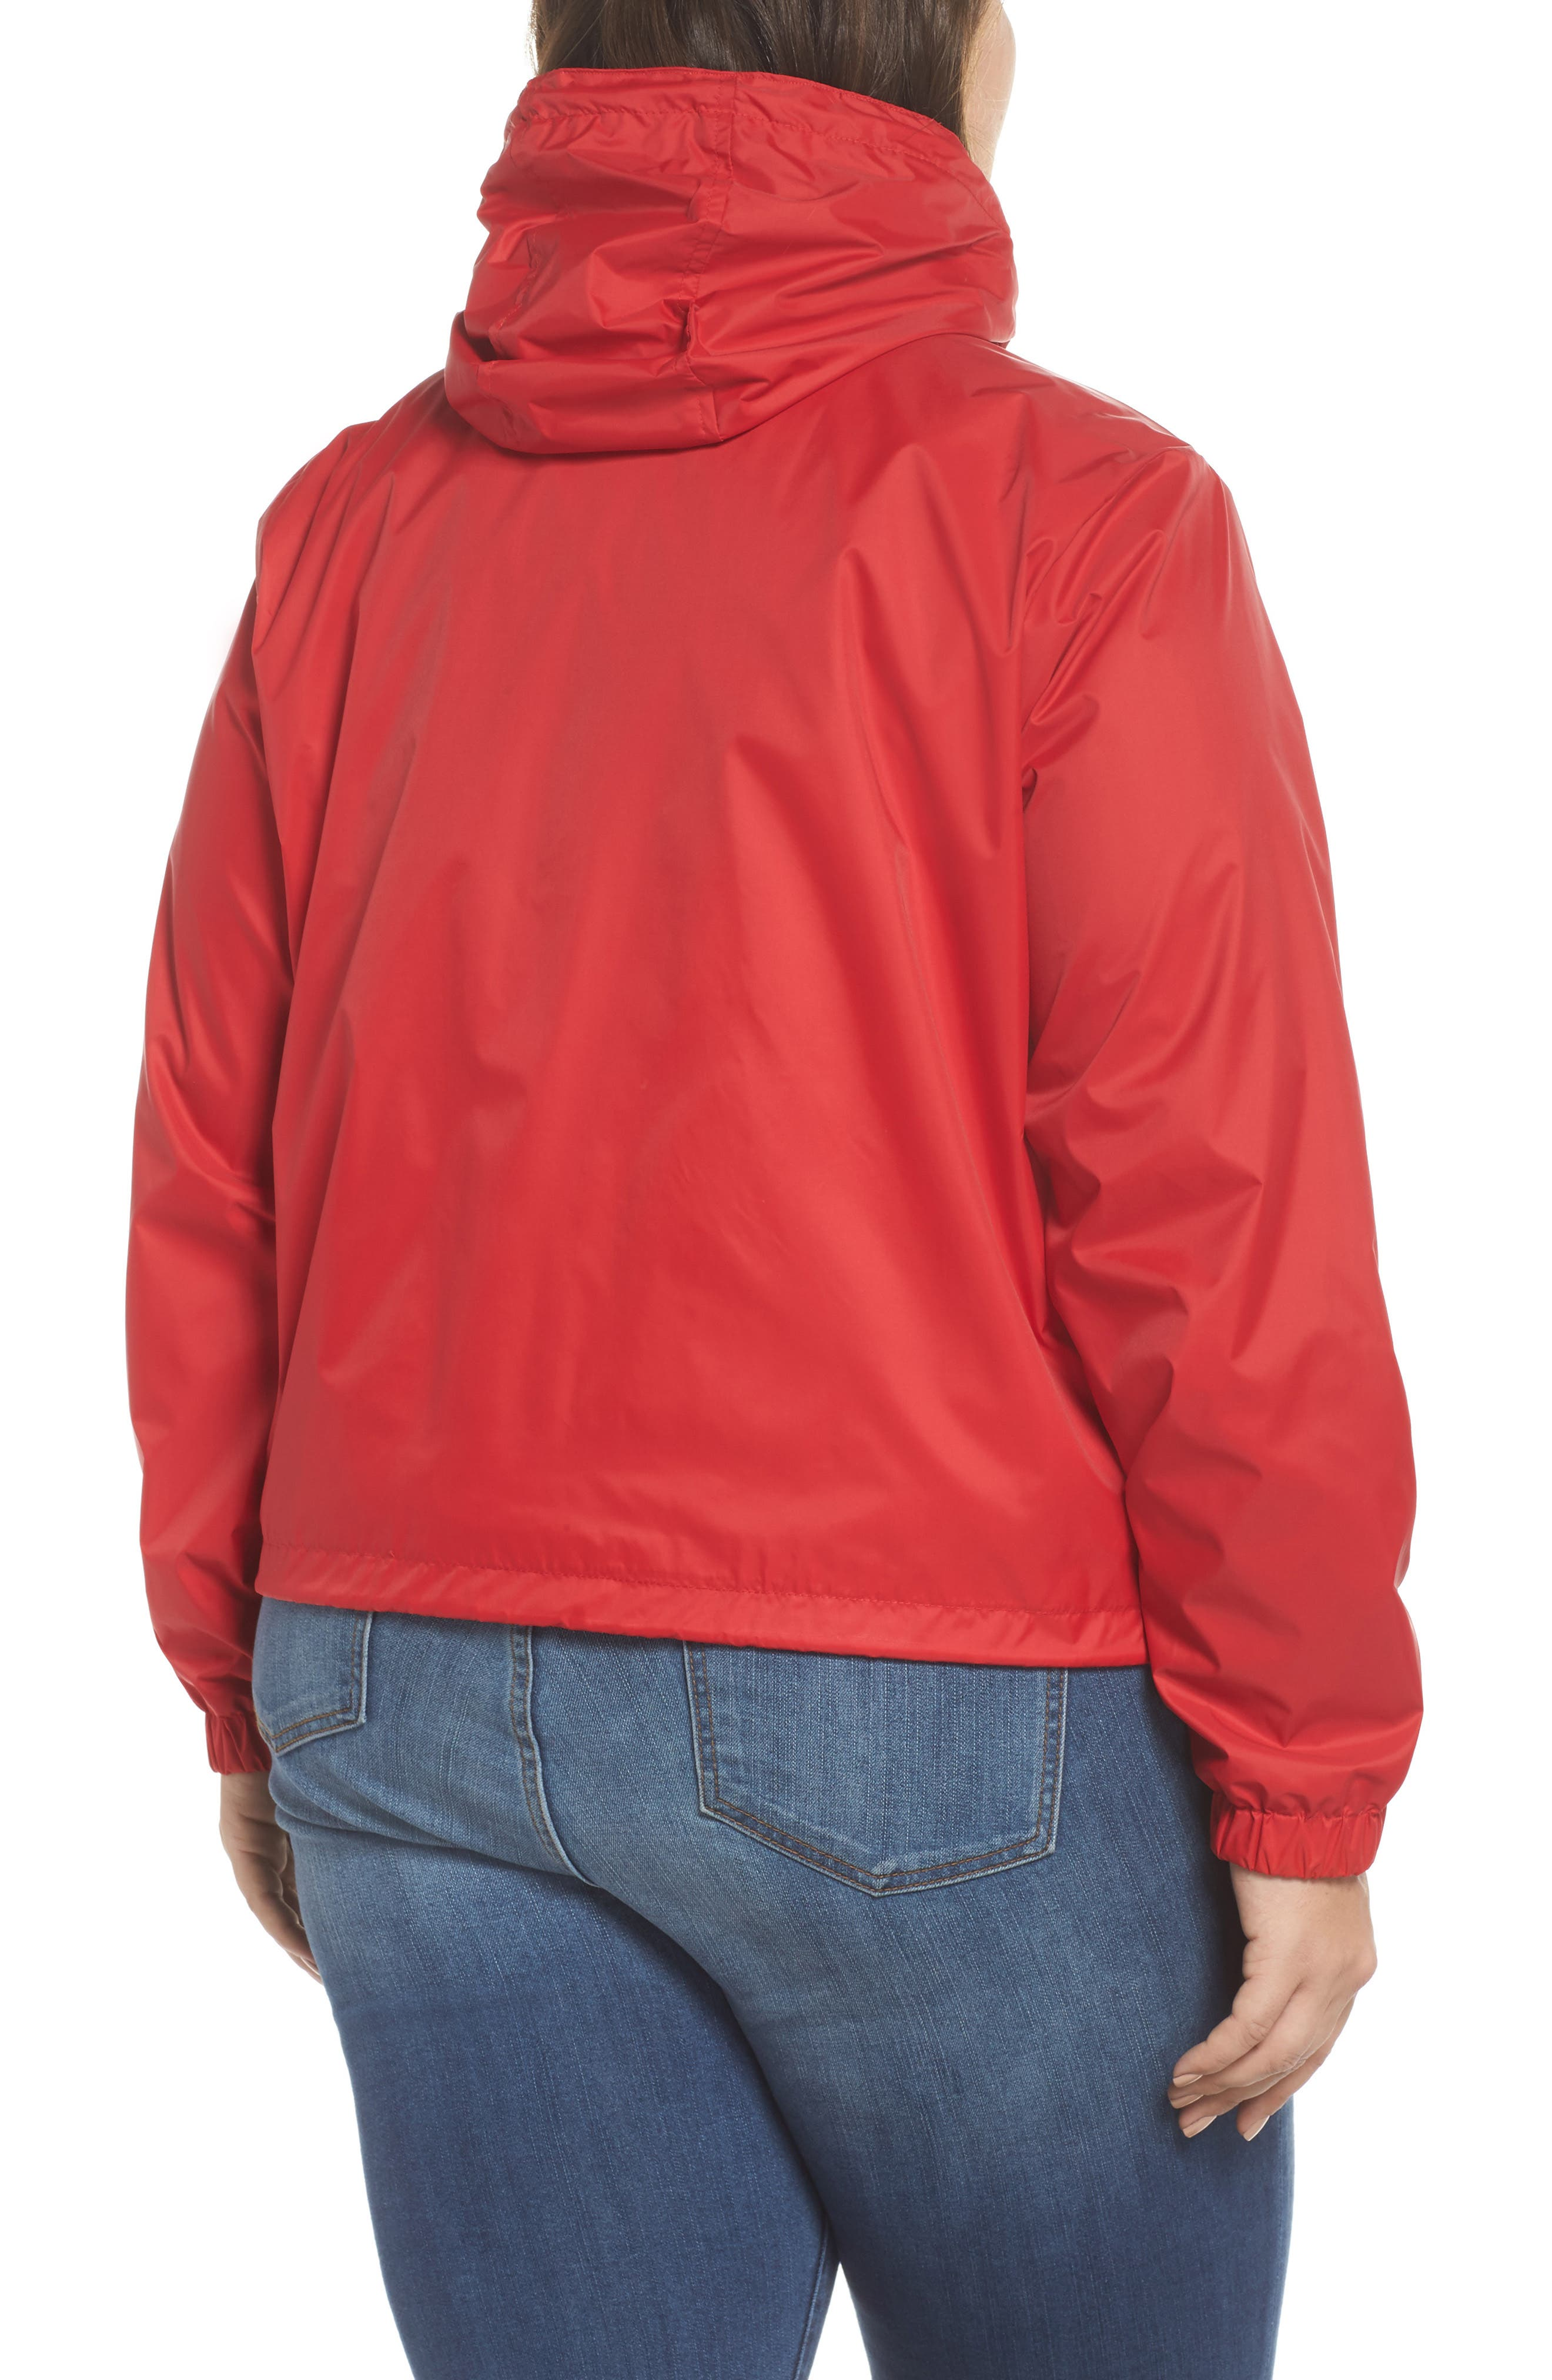 Retro Hooded Coach's Jacket,                             Alternate thumbnail 2, color,                             Red